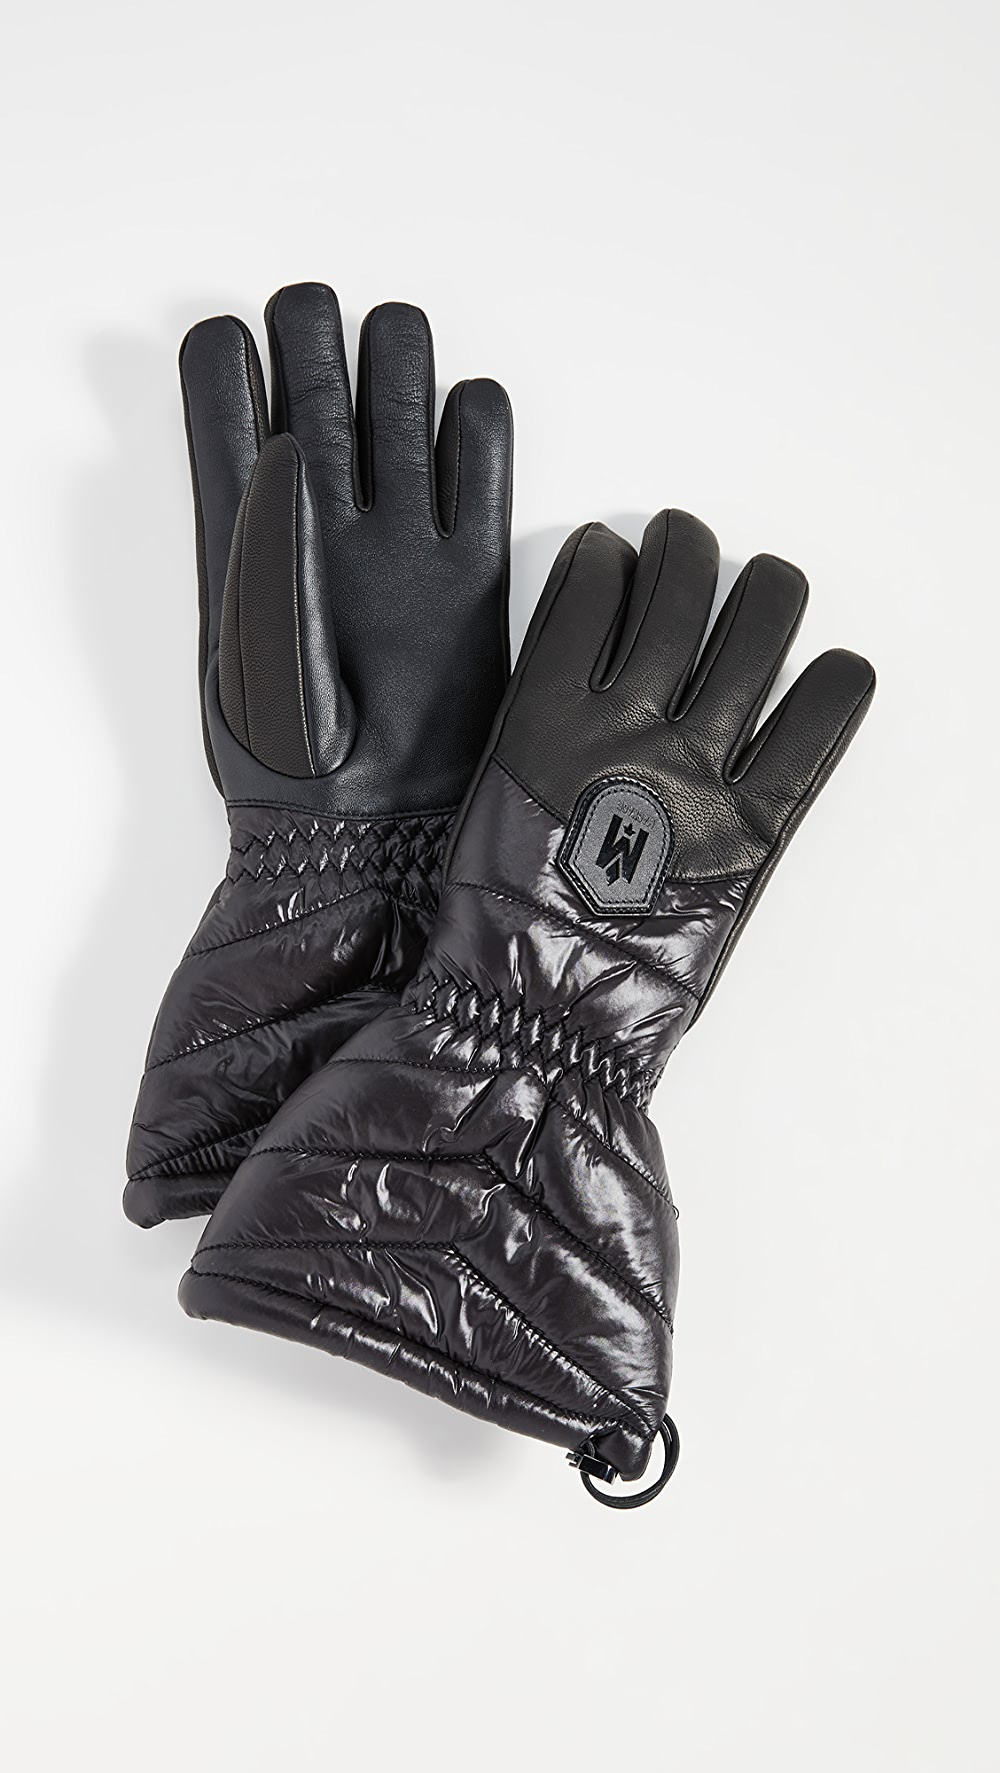 Romantic Mackage - Adley Outdoor Gloves Agreeable To Taste